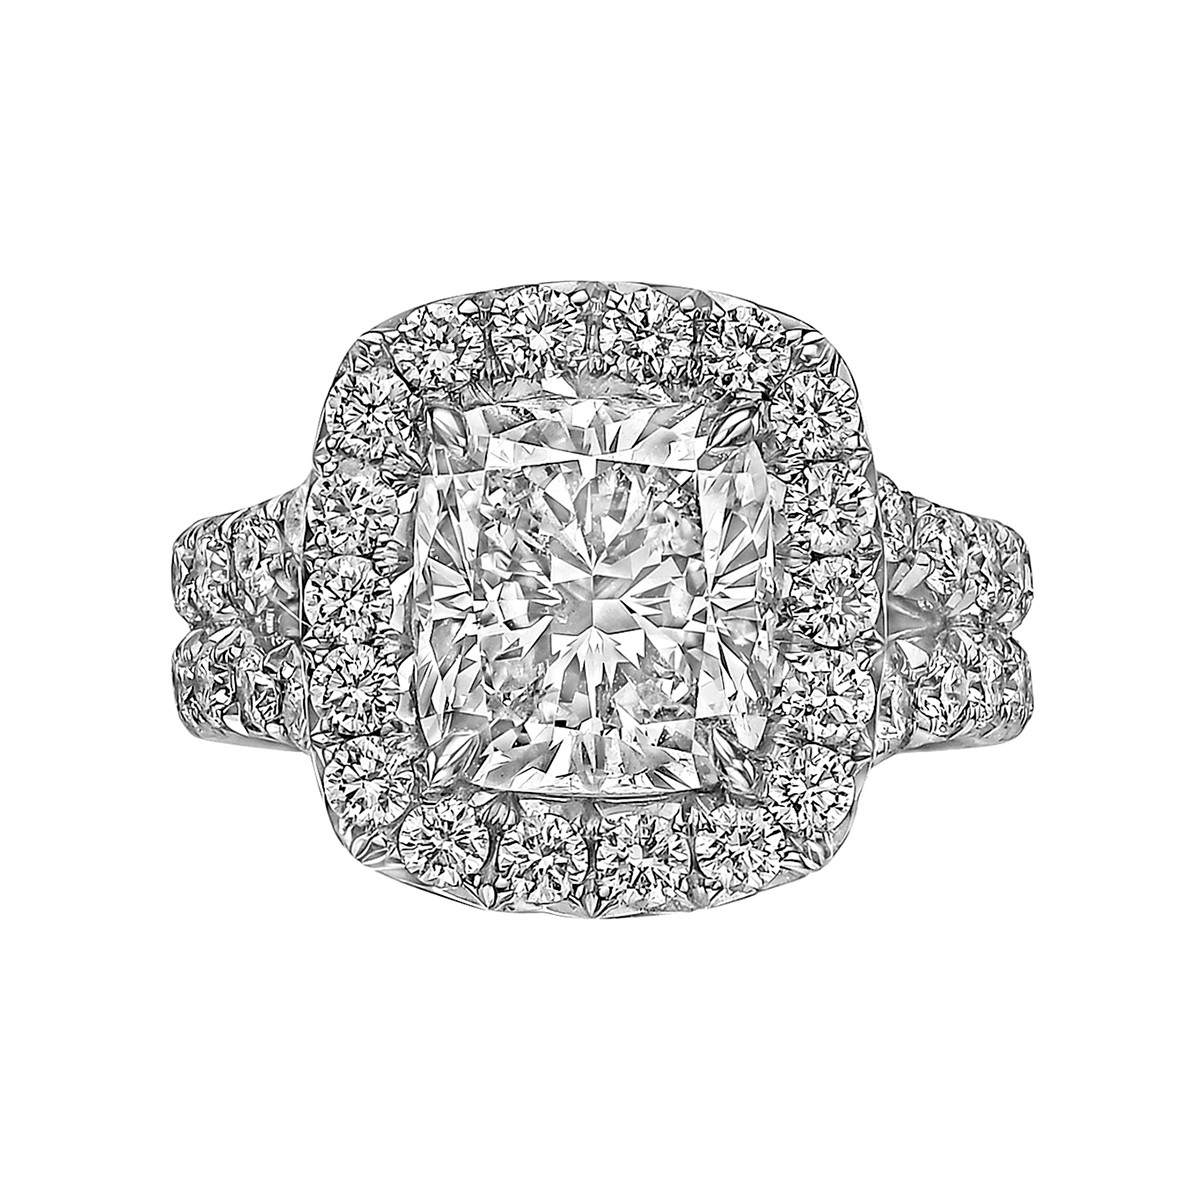 3.03ct Cushion-Cut Diamond Ring (F/SI1)